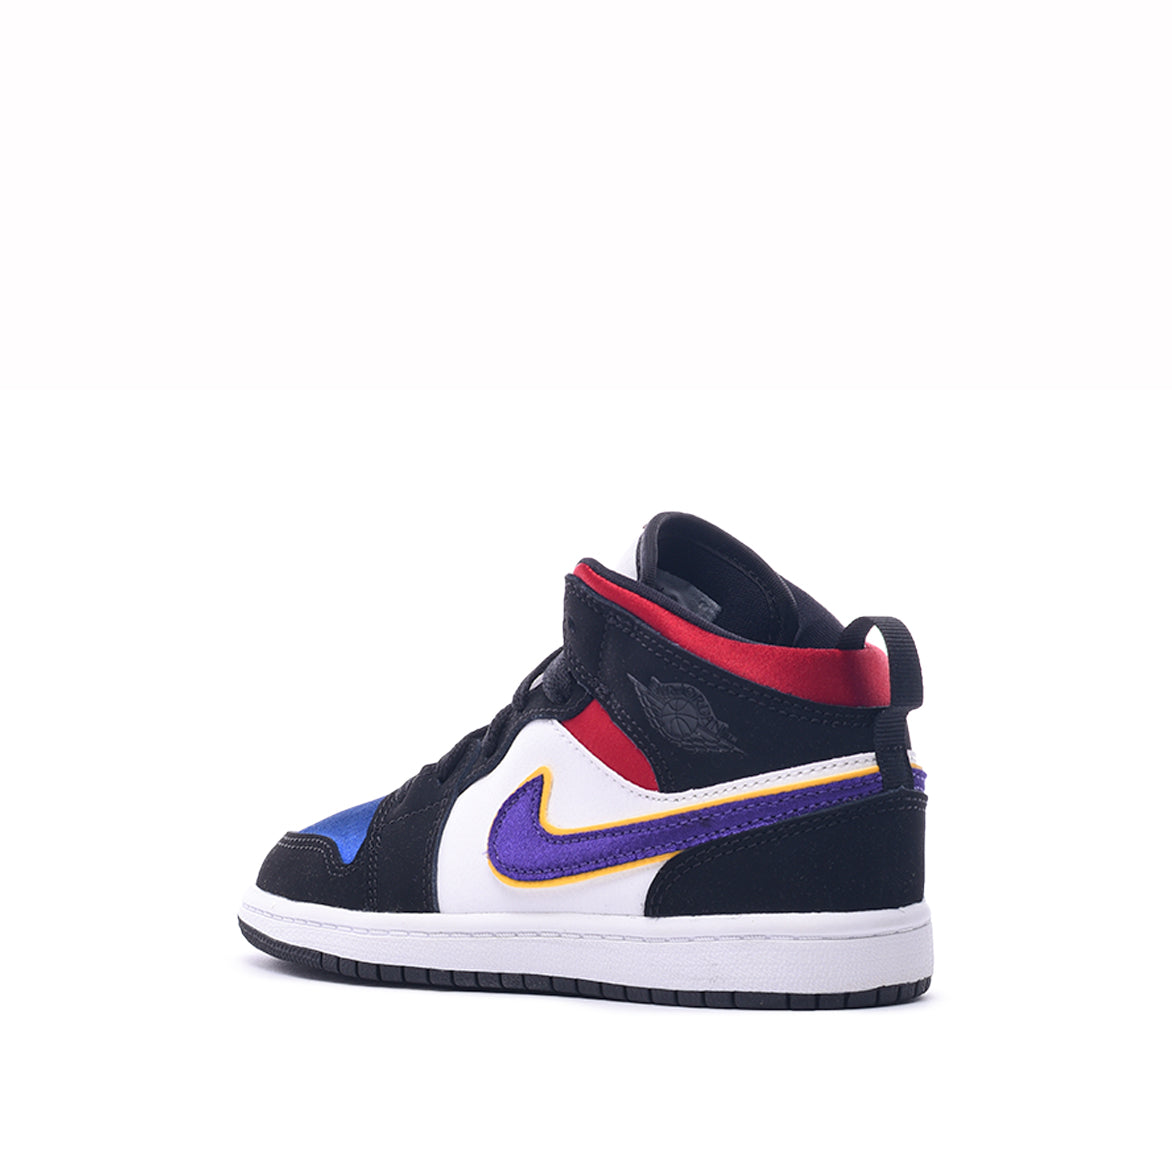 newest 6f533 623c4 AIR JORDAN 1 MID SE (PS) - BLACK / FIELD PURPLE